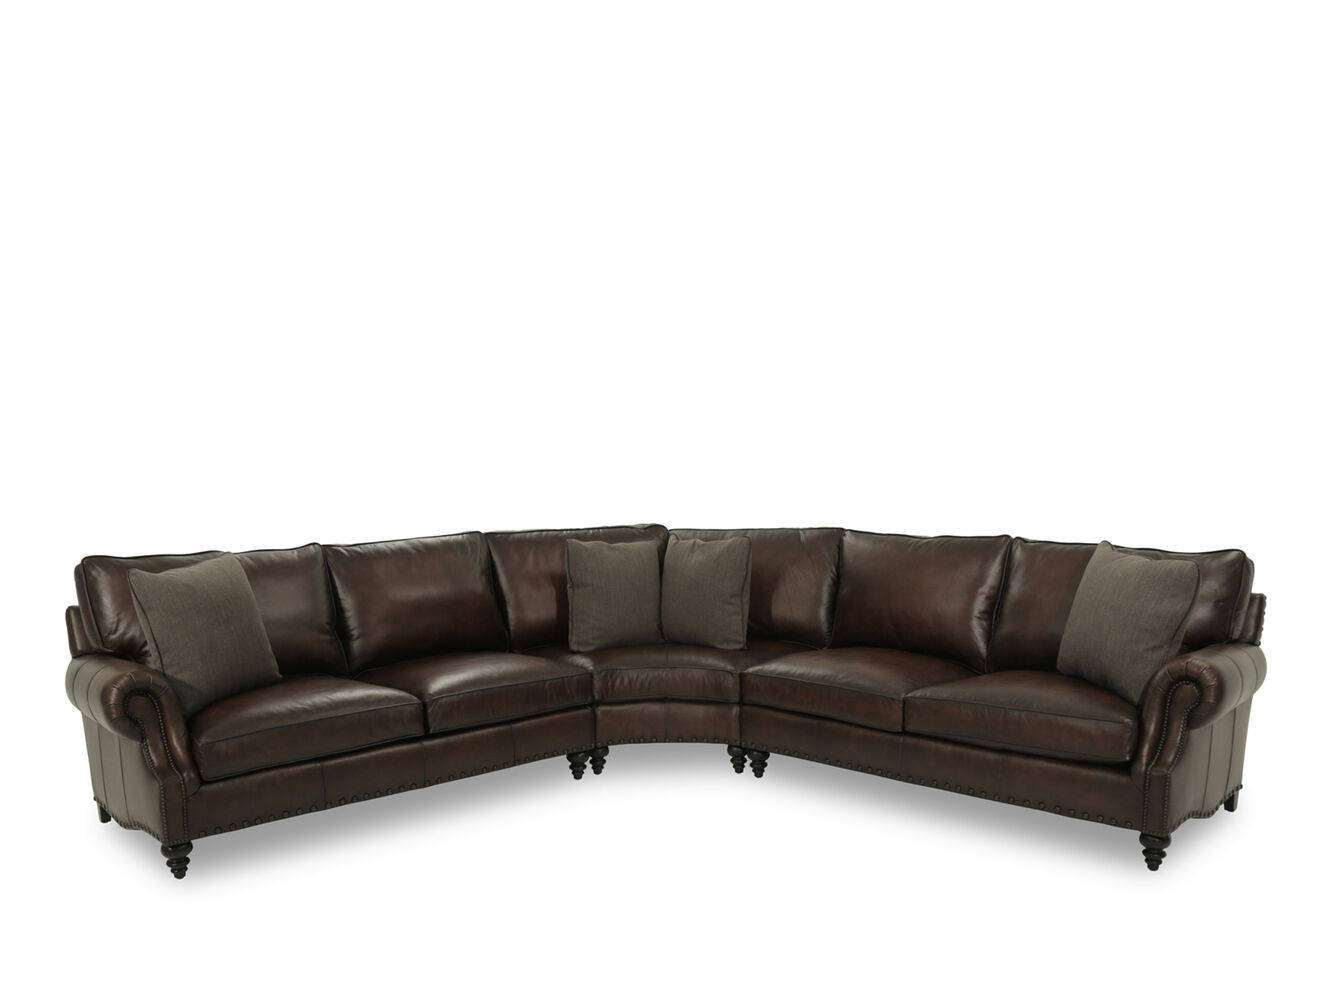 bernhardt fleming leather sectional sofa mathis brothers